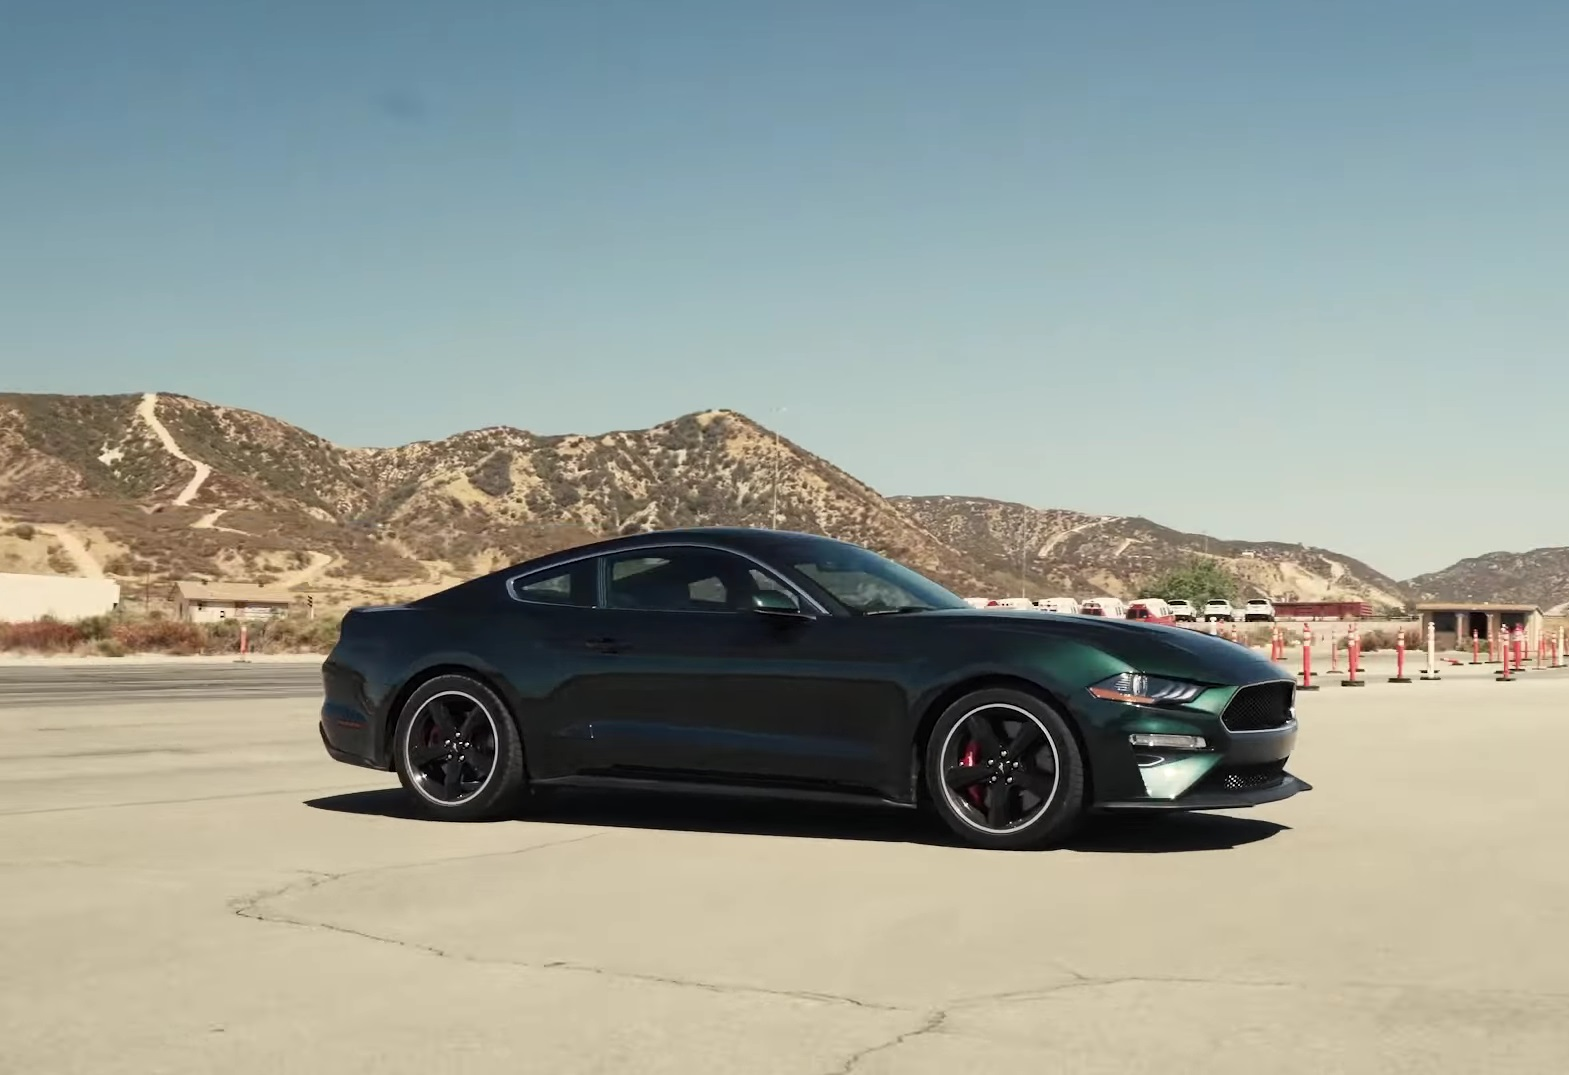 Video: 2019 Ford Mustang Bullitt Road Test